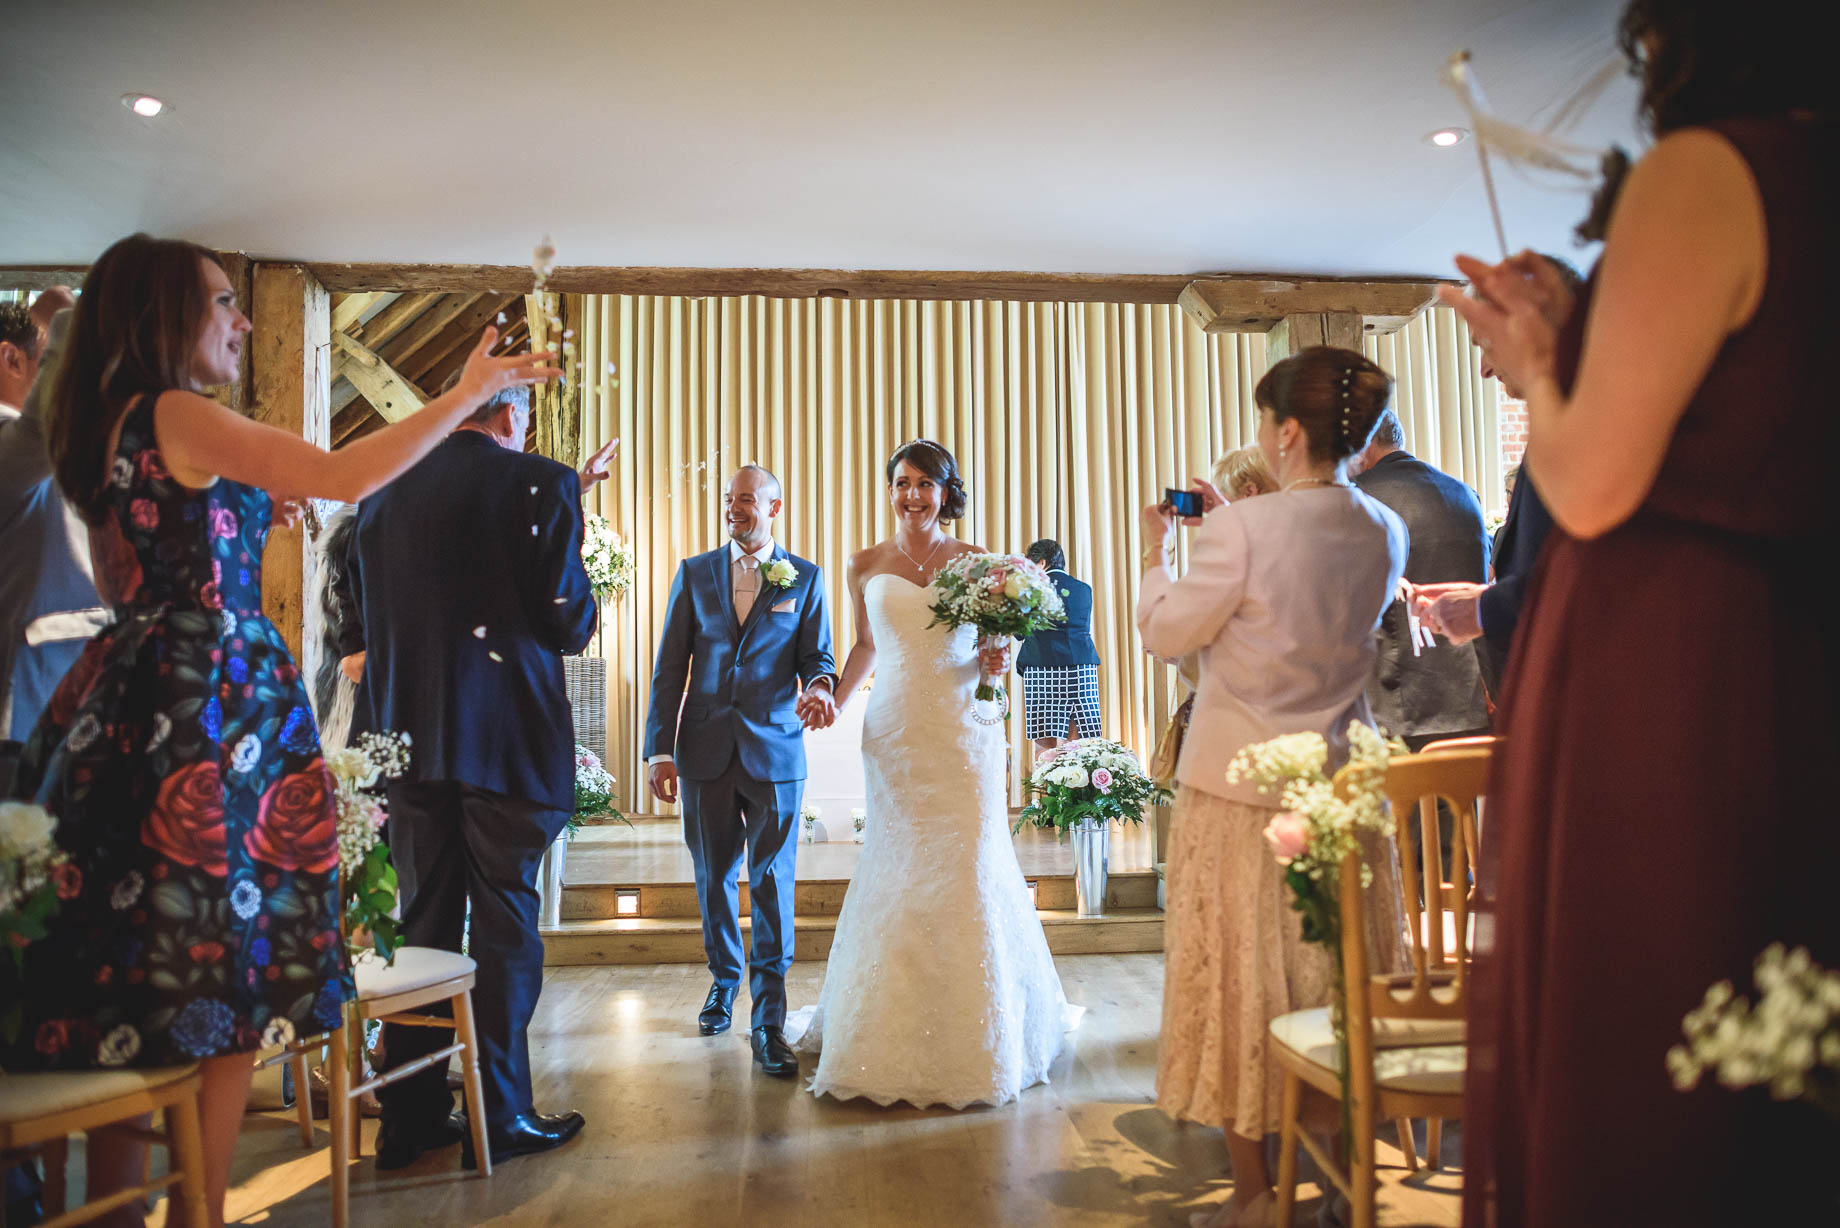 Bury Court Barn wedding photography - Guy Collier Photography - Karen and John (63 of 166)